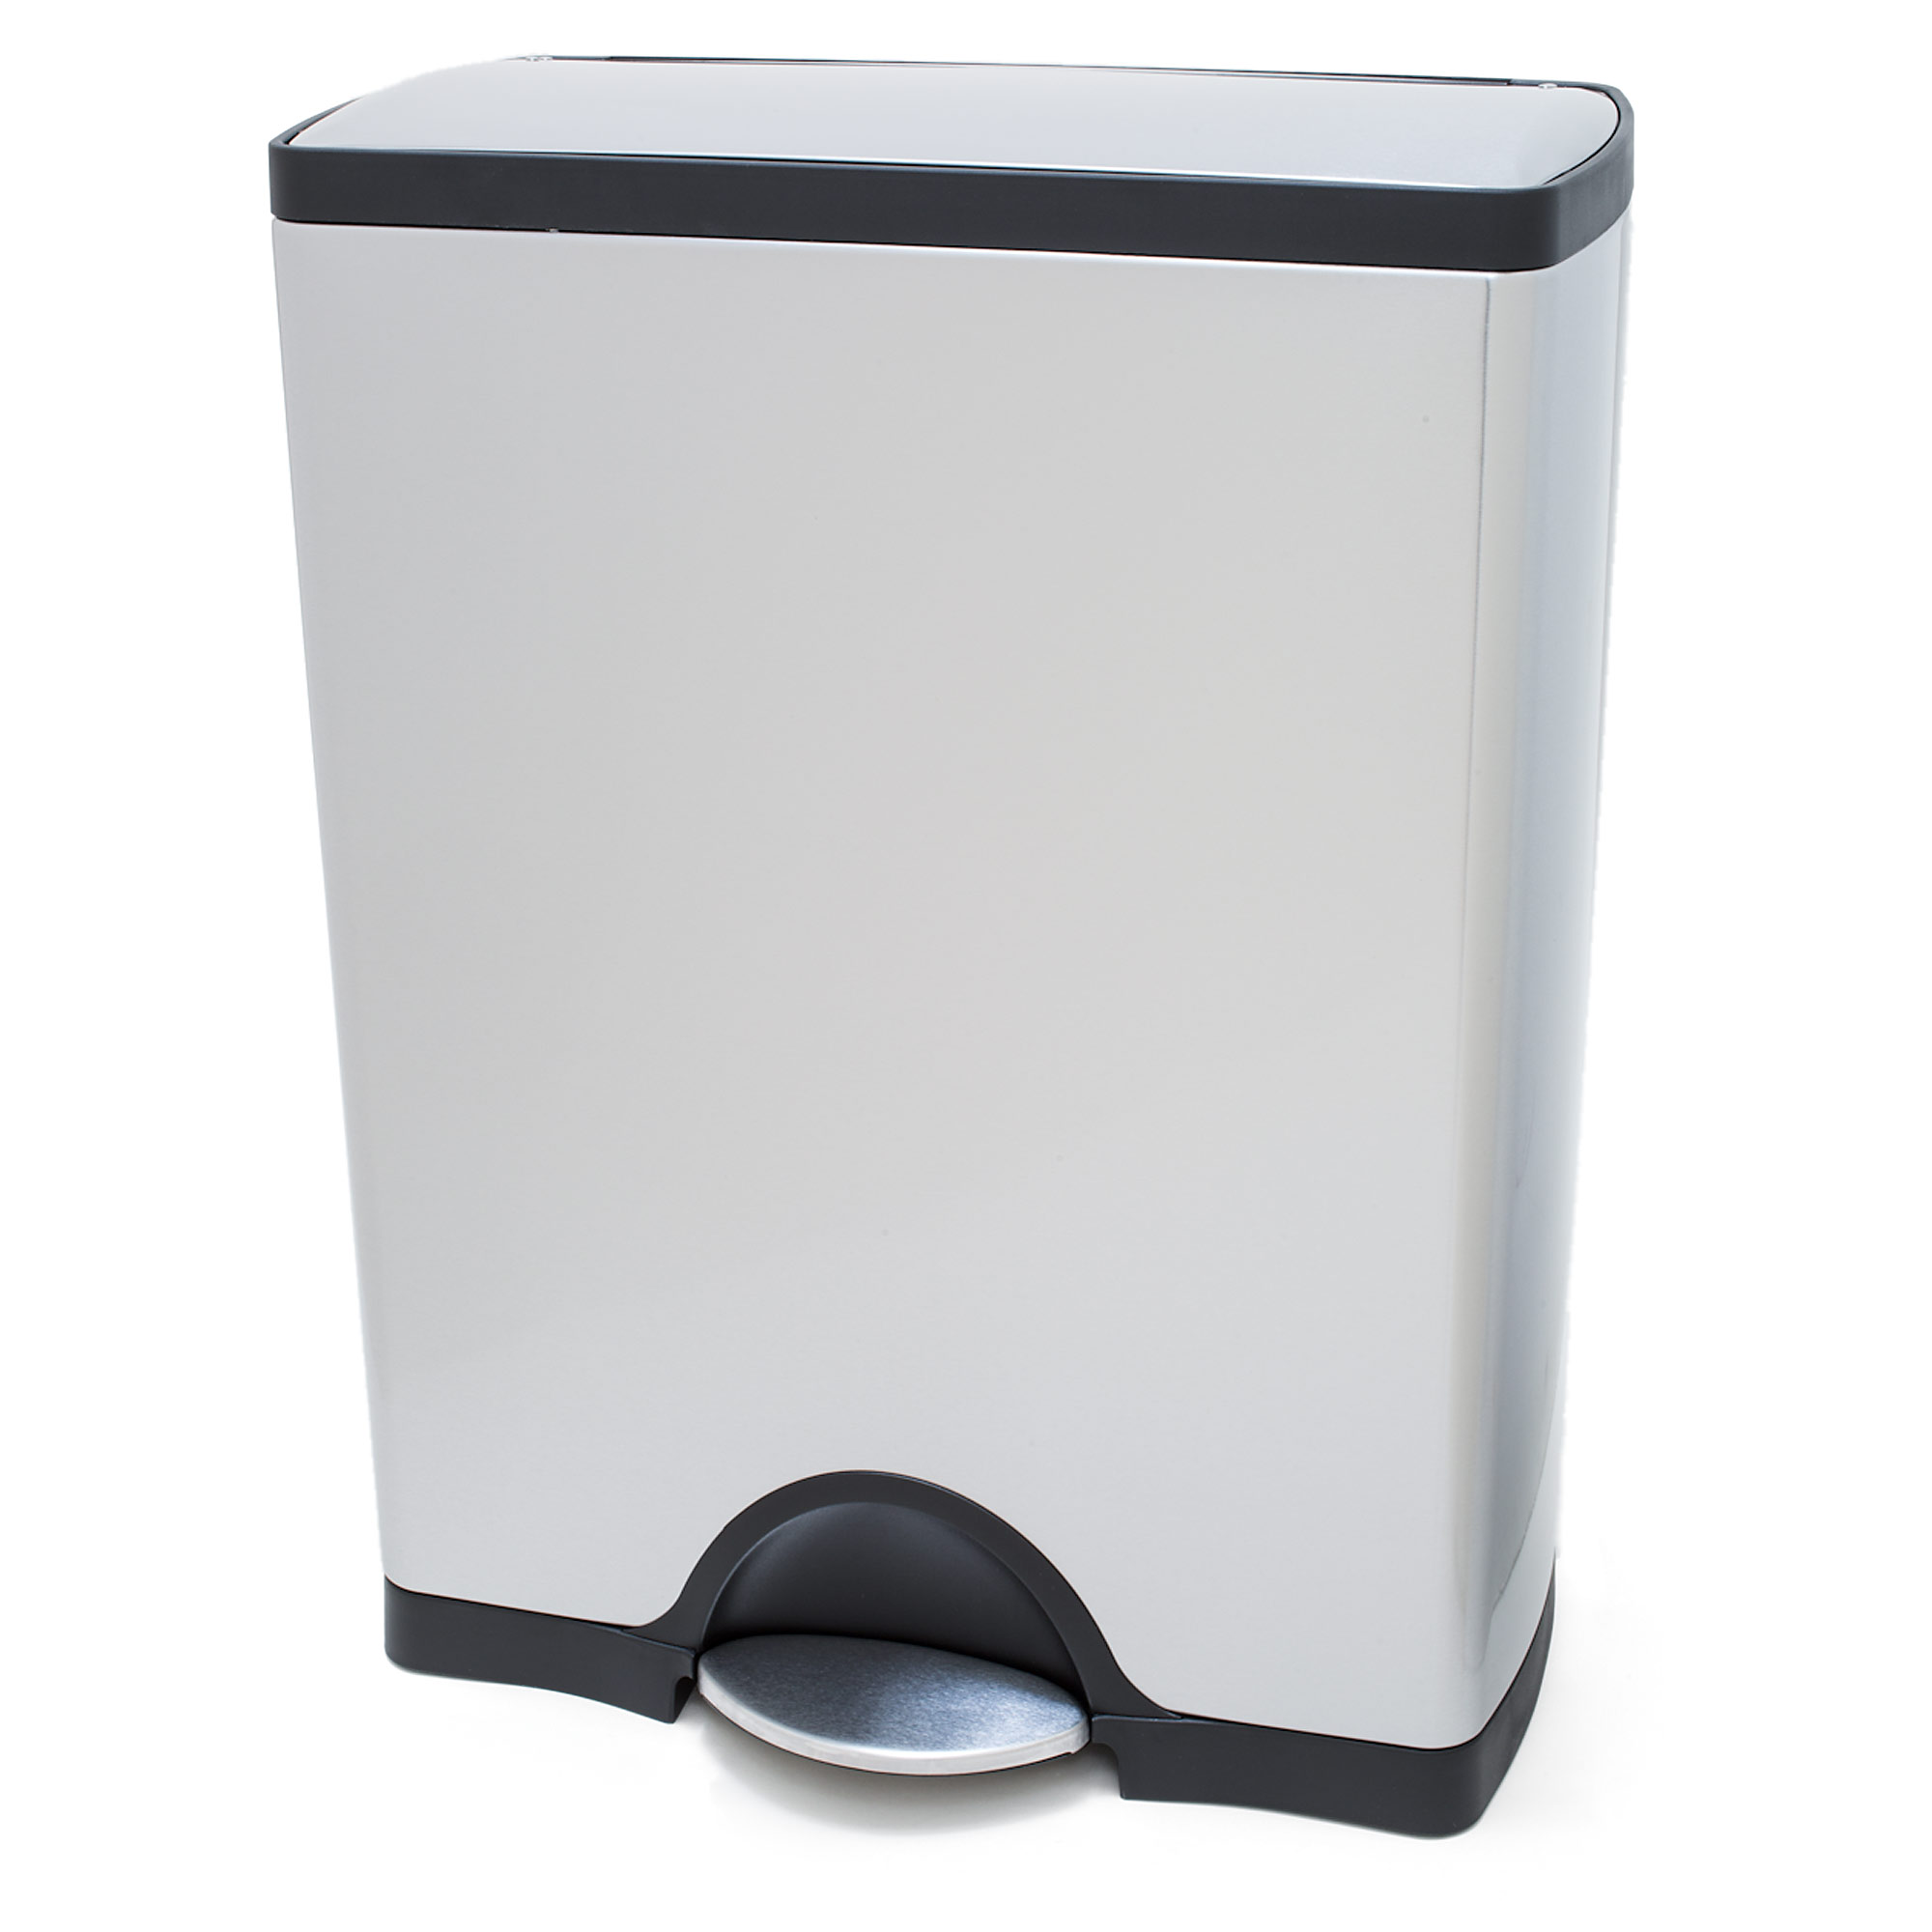 Kitchen Garbage Can Sil Kitchen 20trash 20can Simplehuman 20rectangular 20step 20trash 20can 20fingerprint Proof 20brushed 20stainless 20steel 2050 20liter 13 20gallon Cw1816jpg